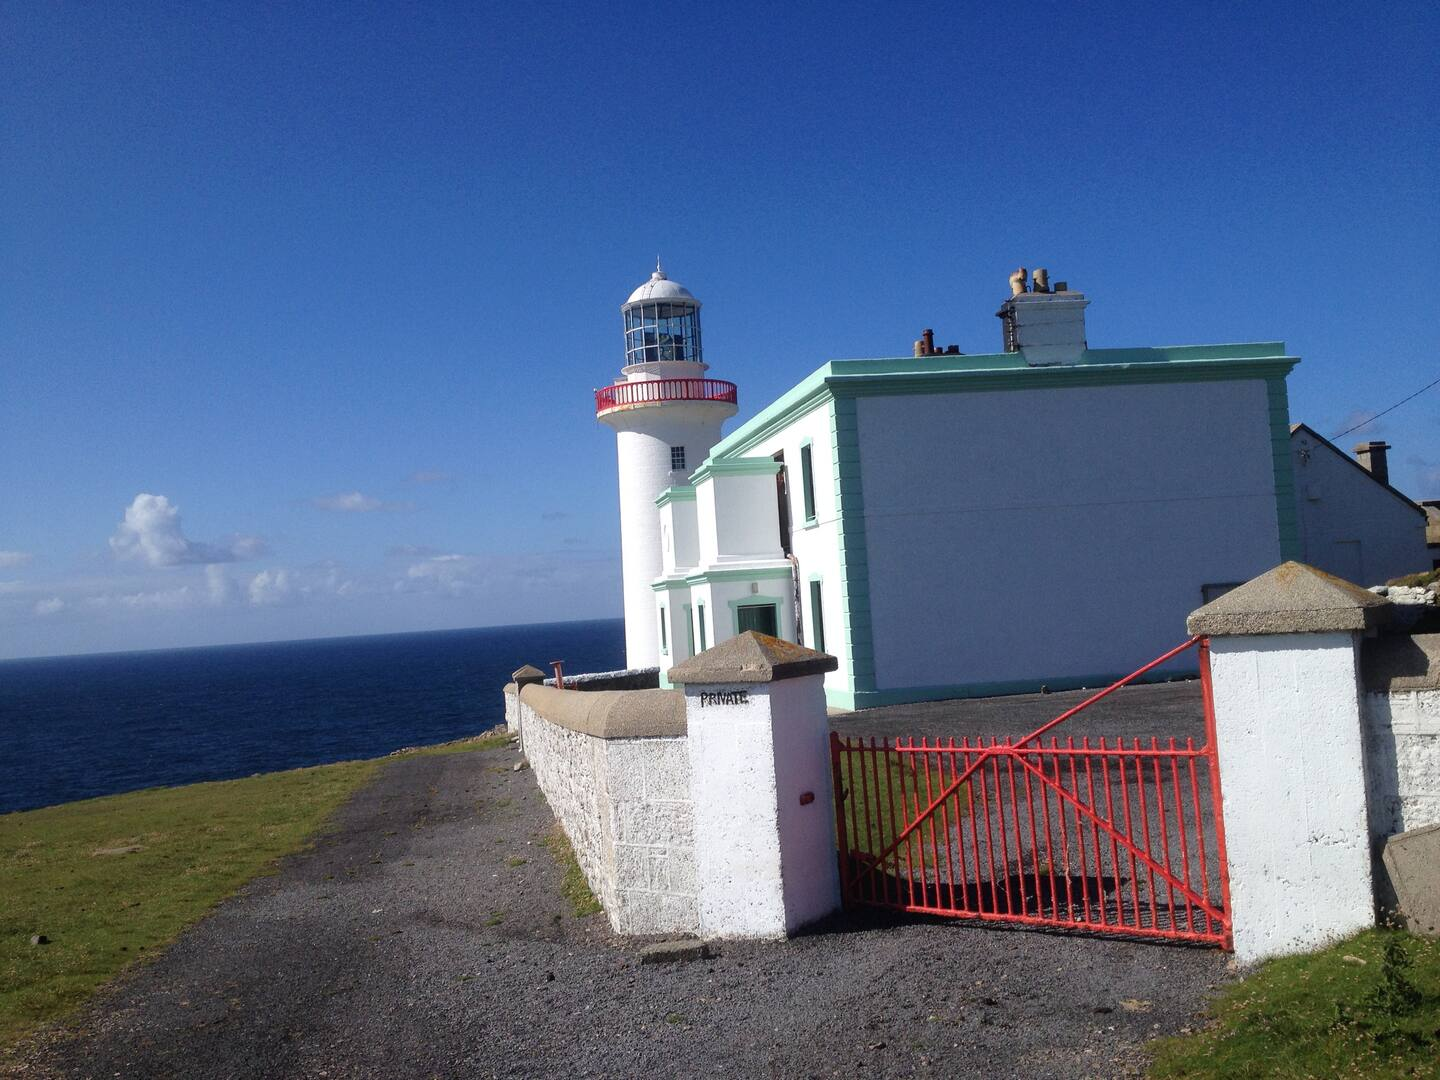 Stay in this Lighthouse Airbnb in Ireland!